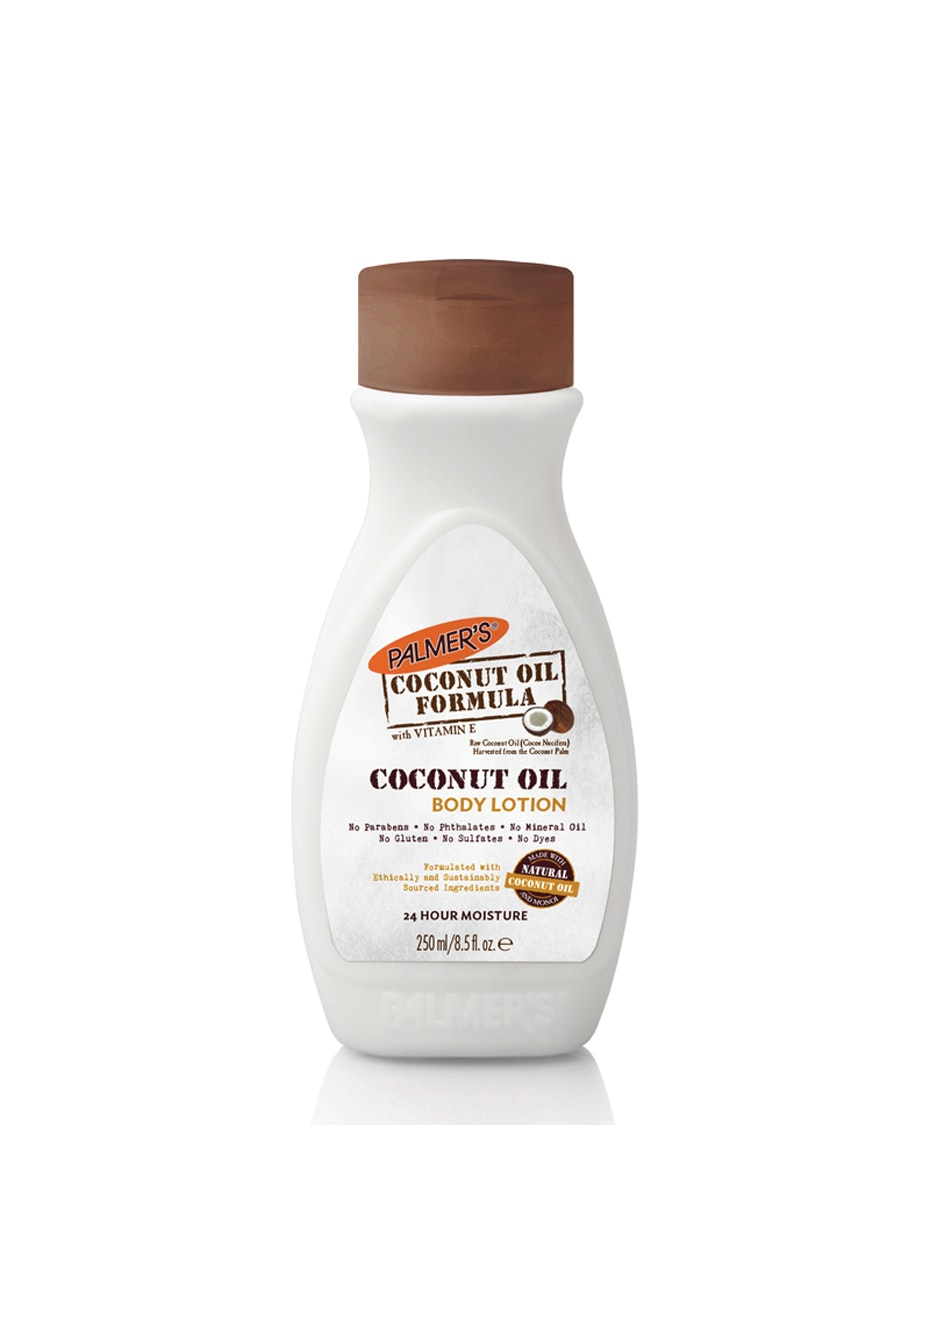 Palmers Cocoa Butter Formula Indulgent Coconut Oil Body Lotion 250ml